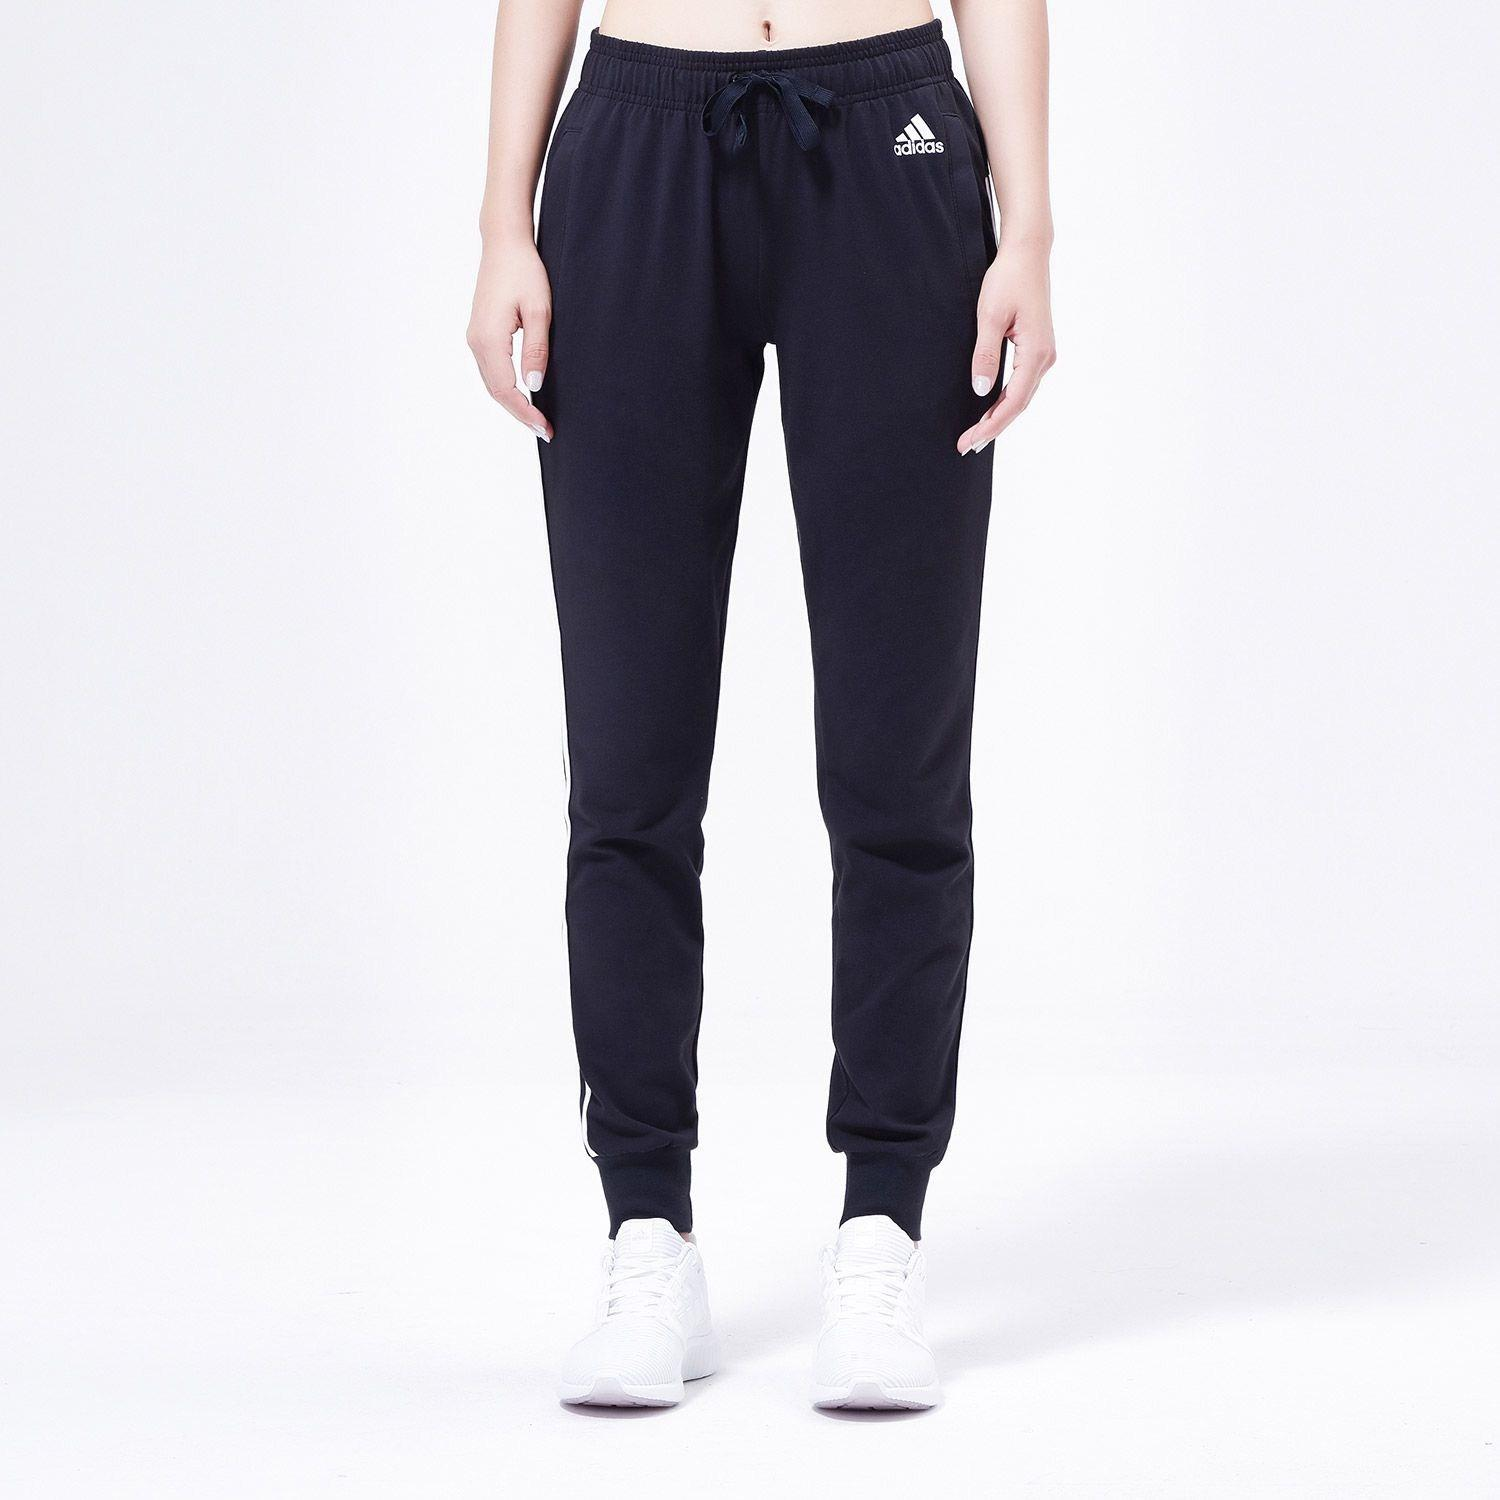 da920ea98ce Adidas Philippines - Adidas Women's Sport Pants for sale - prices ...